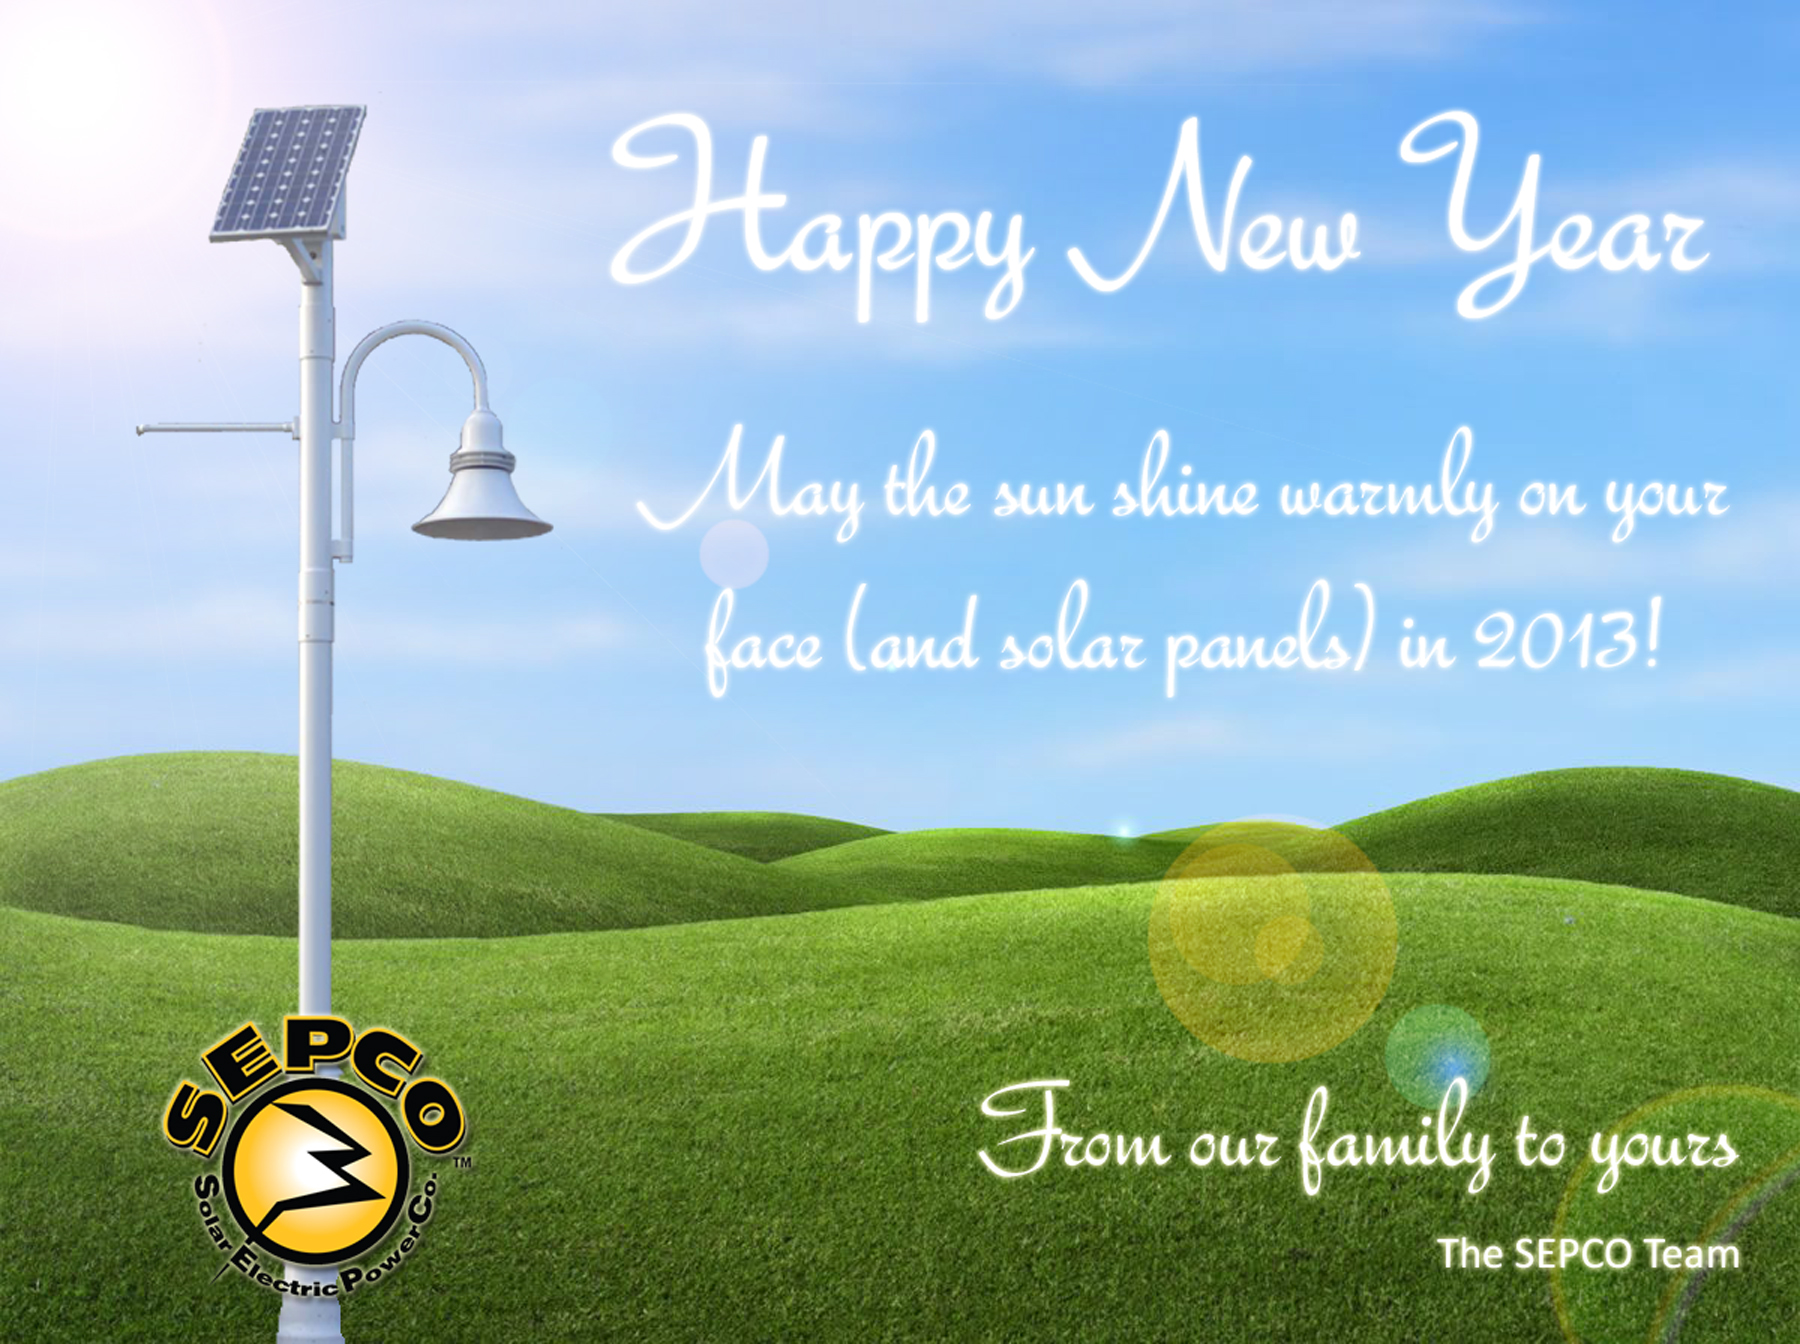 Happy New Year from SEPCO